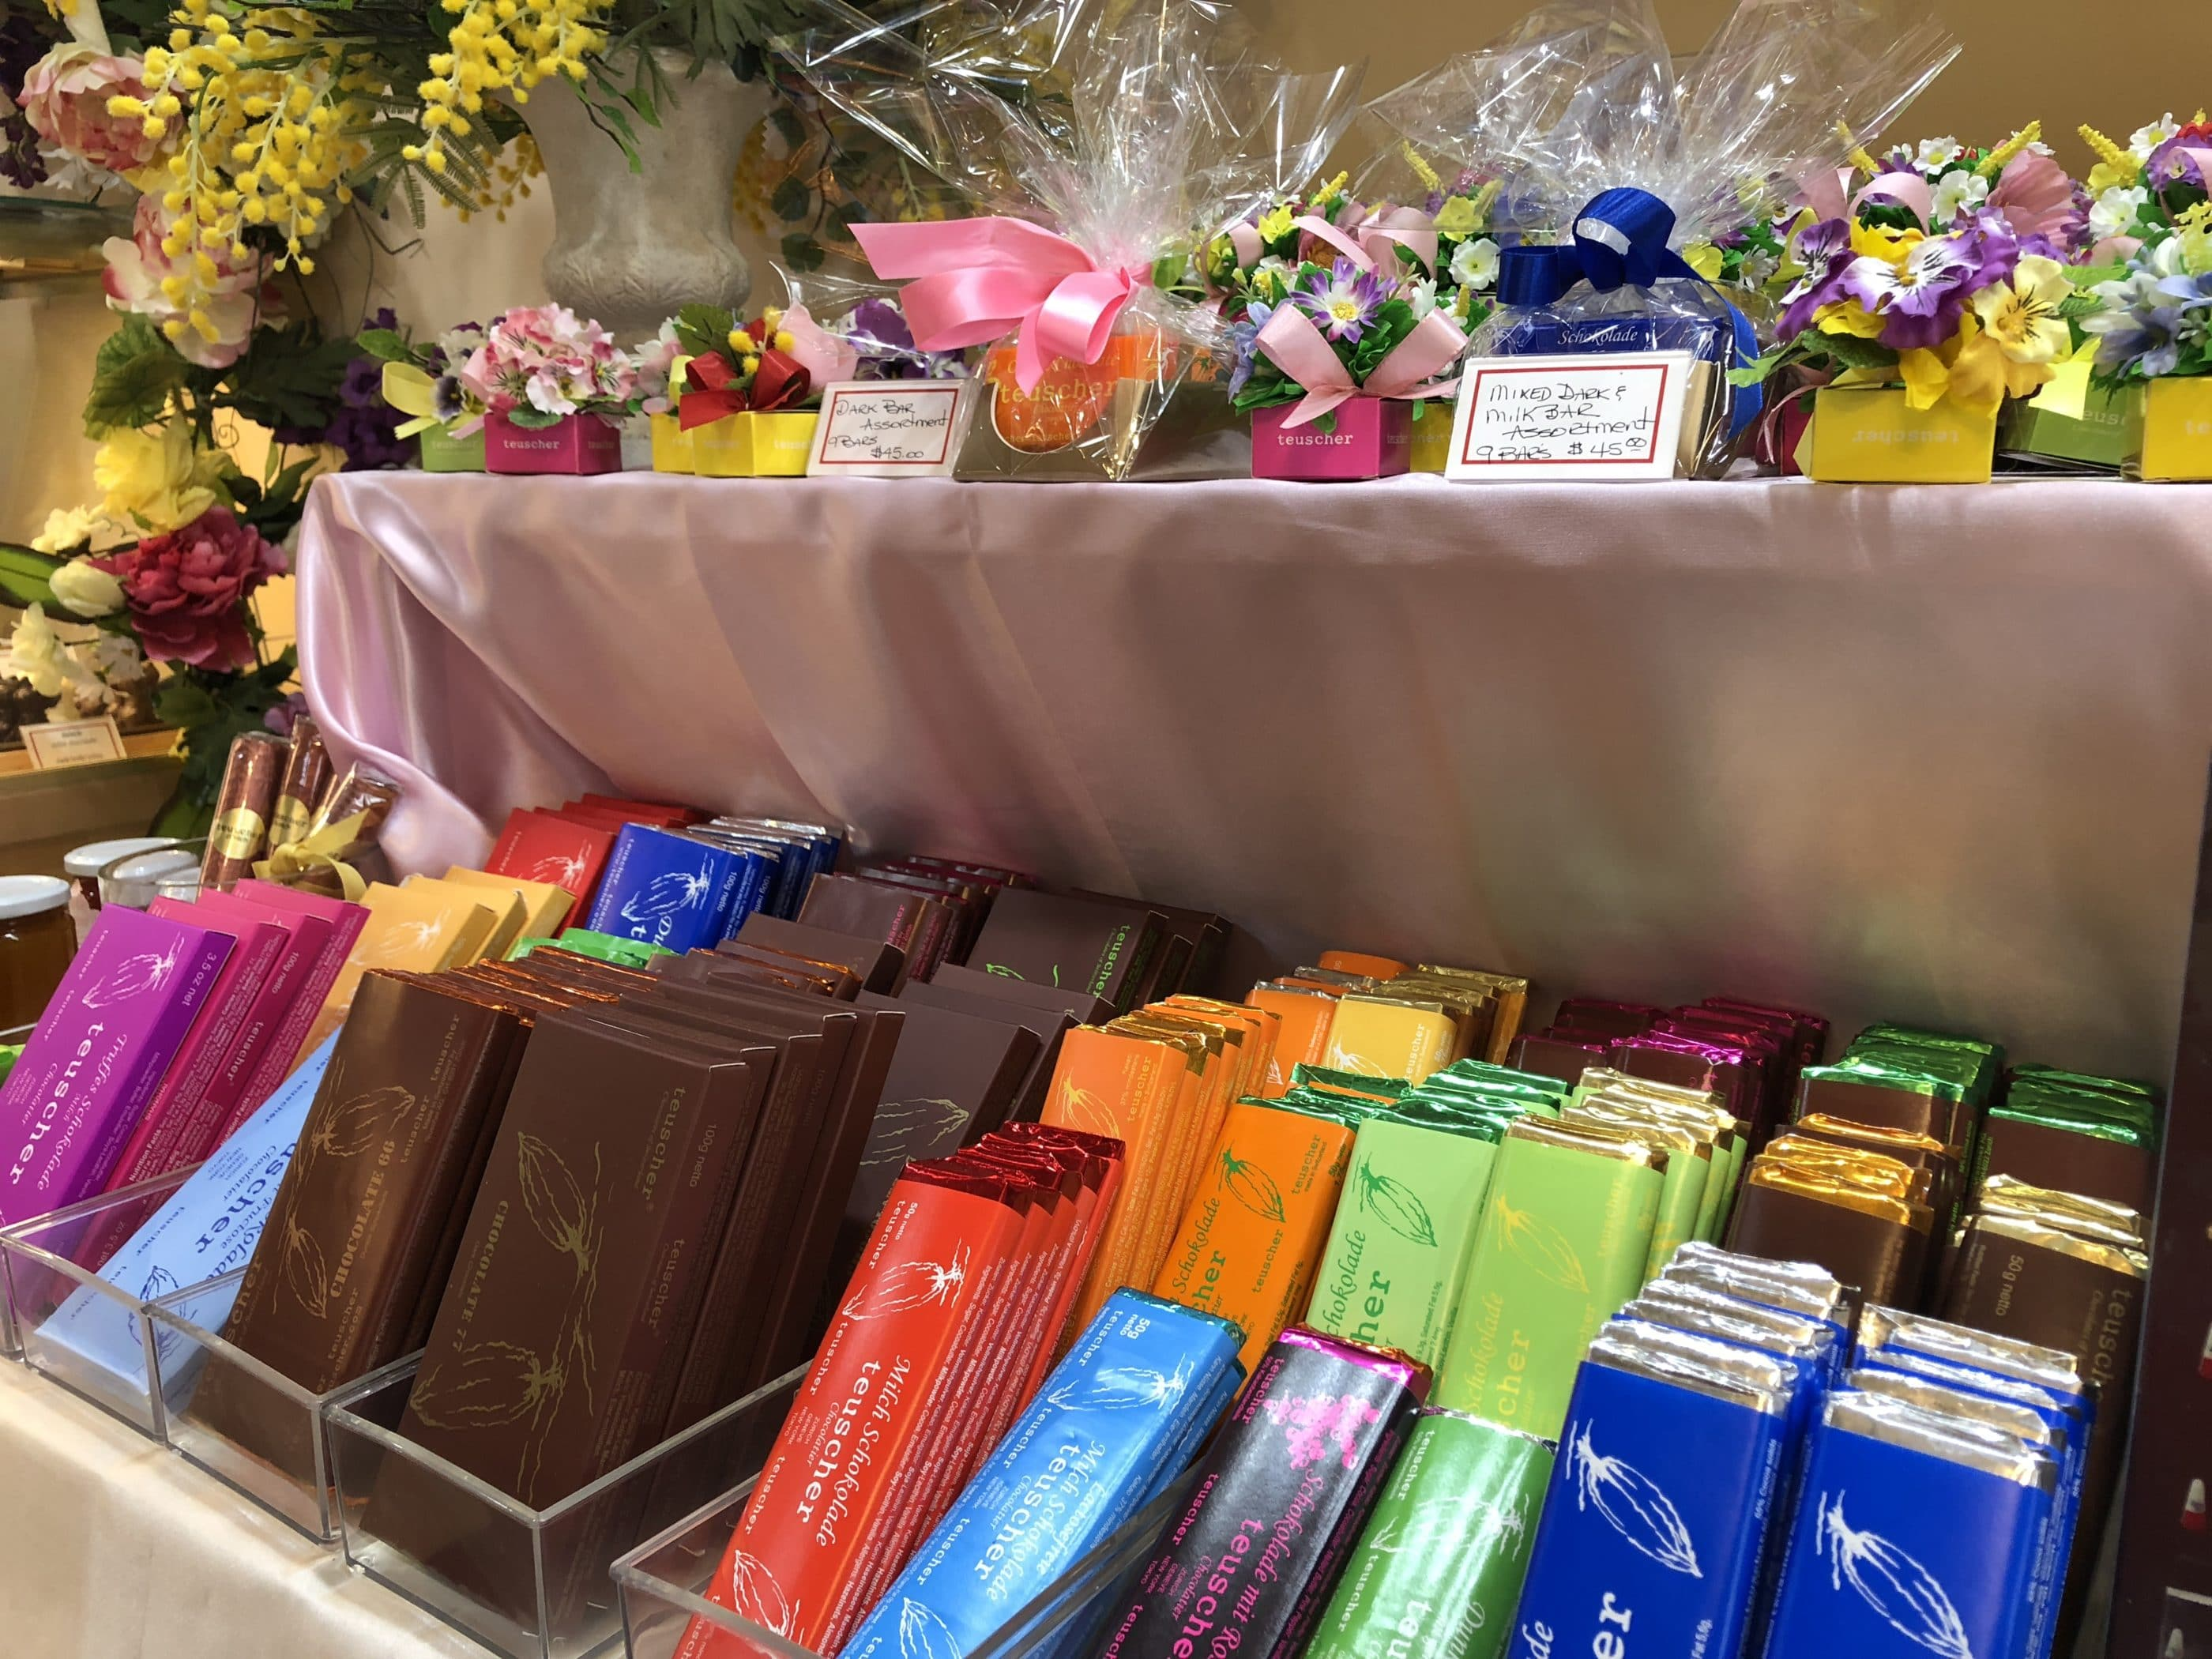 Teuscher bars of chocolate and wrapped gifts to easily take away.